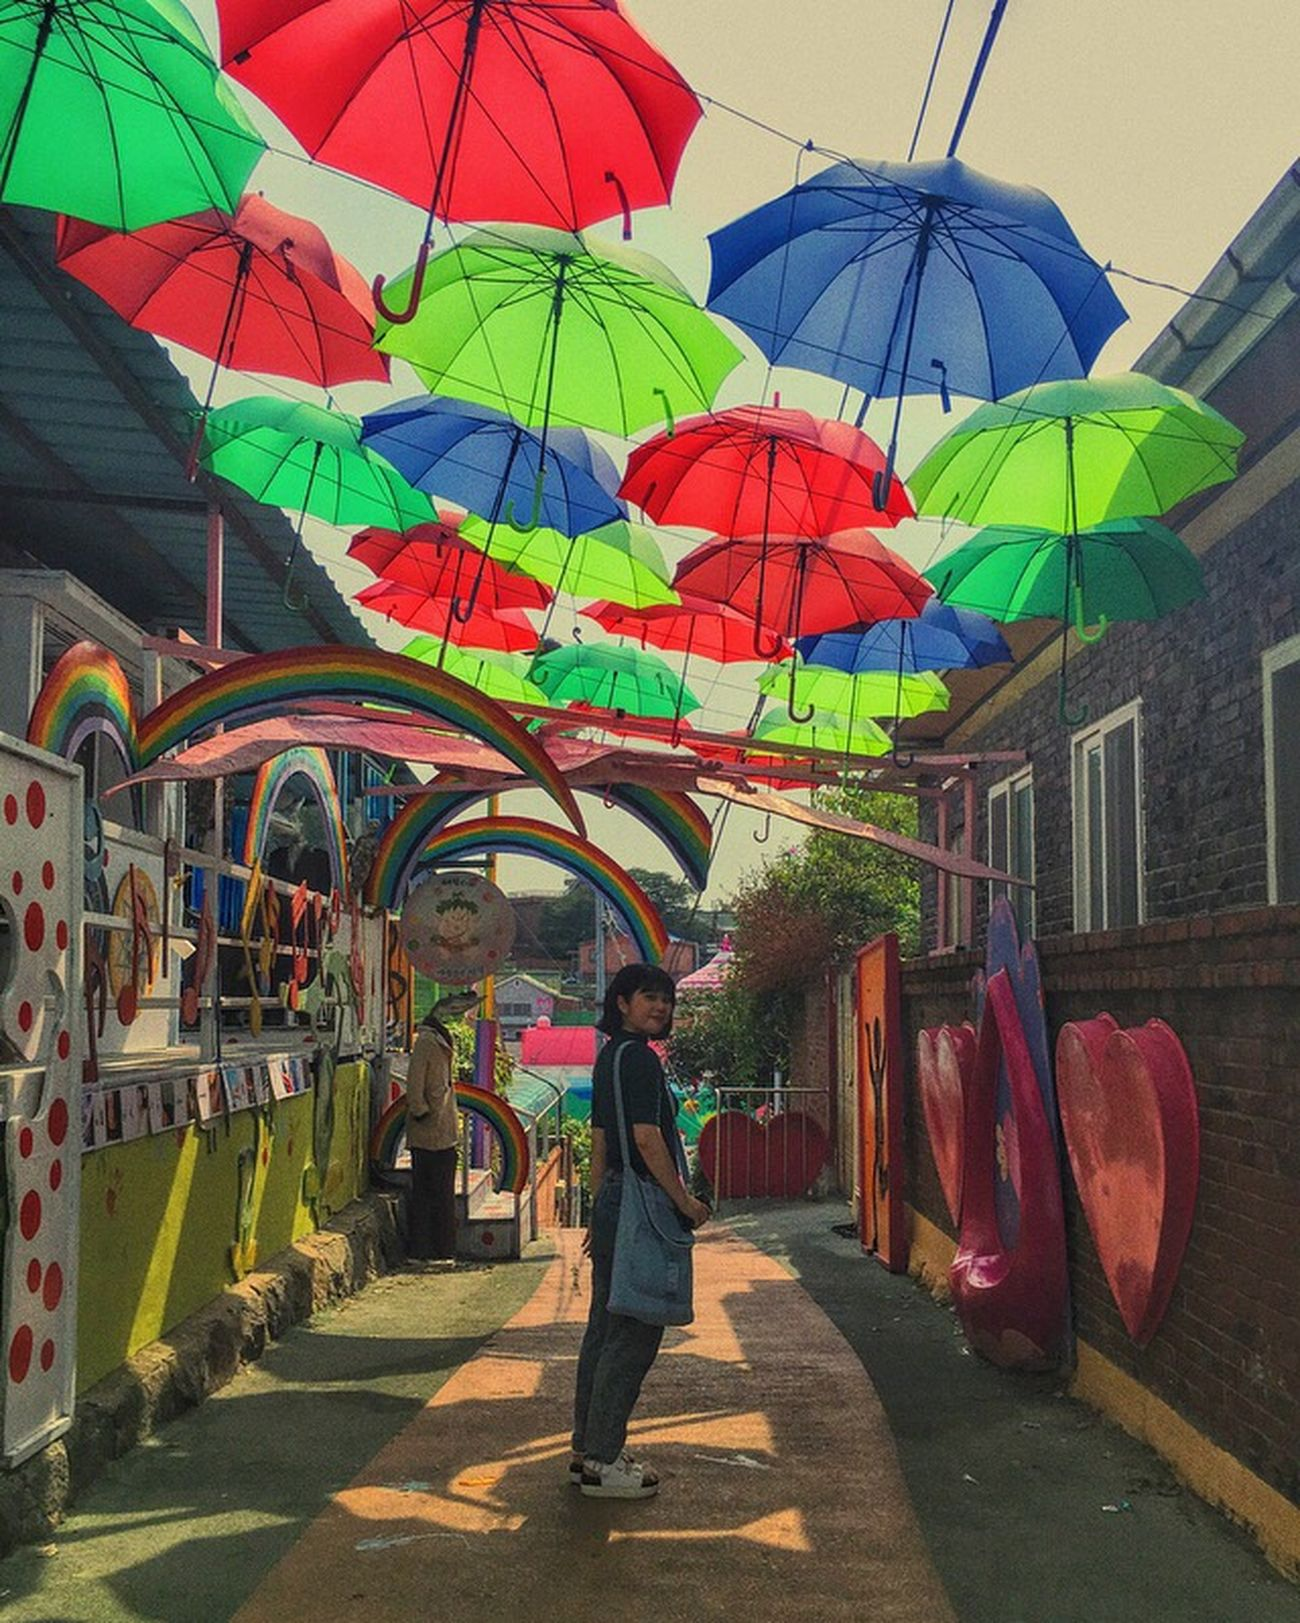 Korea Multi Colored Full Length Walking Real People Adult People Adults Only Women Only Women One Person Men Outdoors Day Architecture City Yes Real View Unbrella Colors